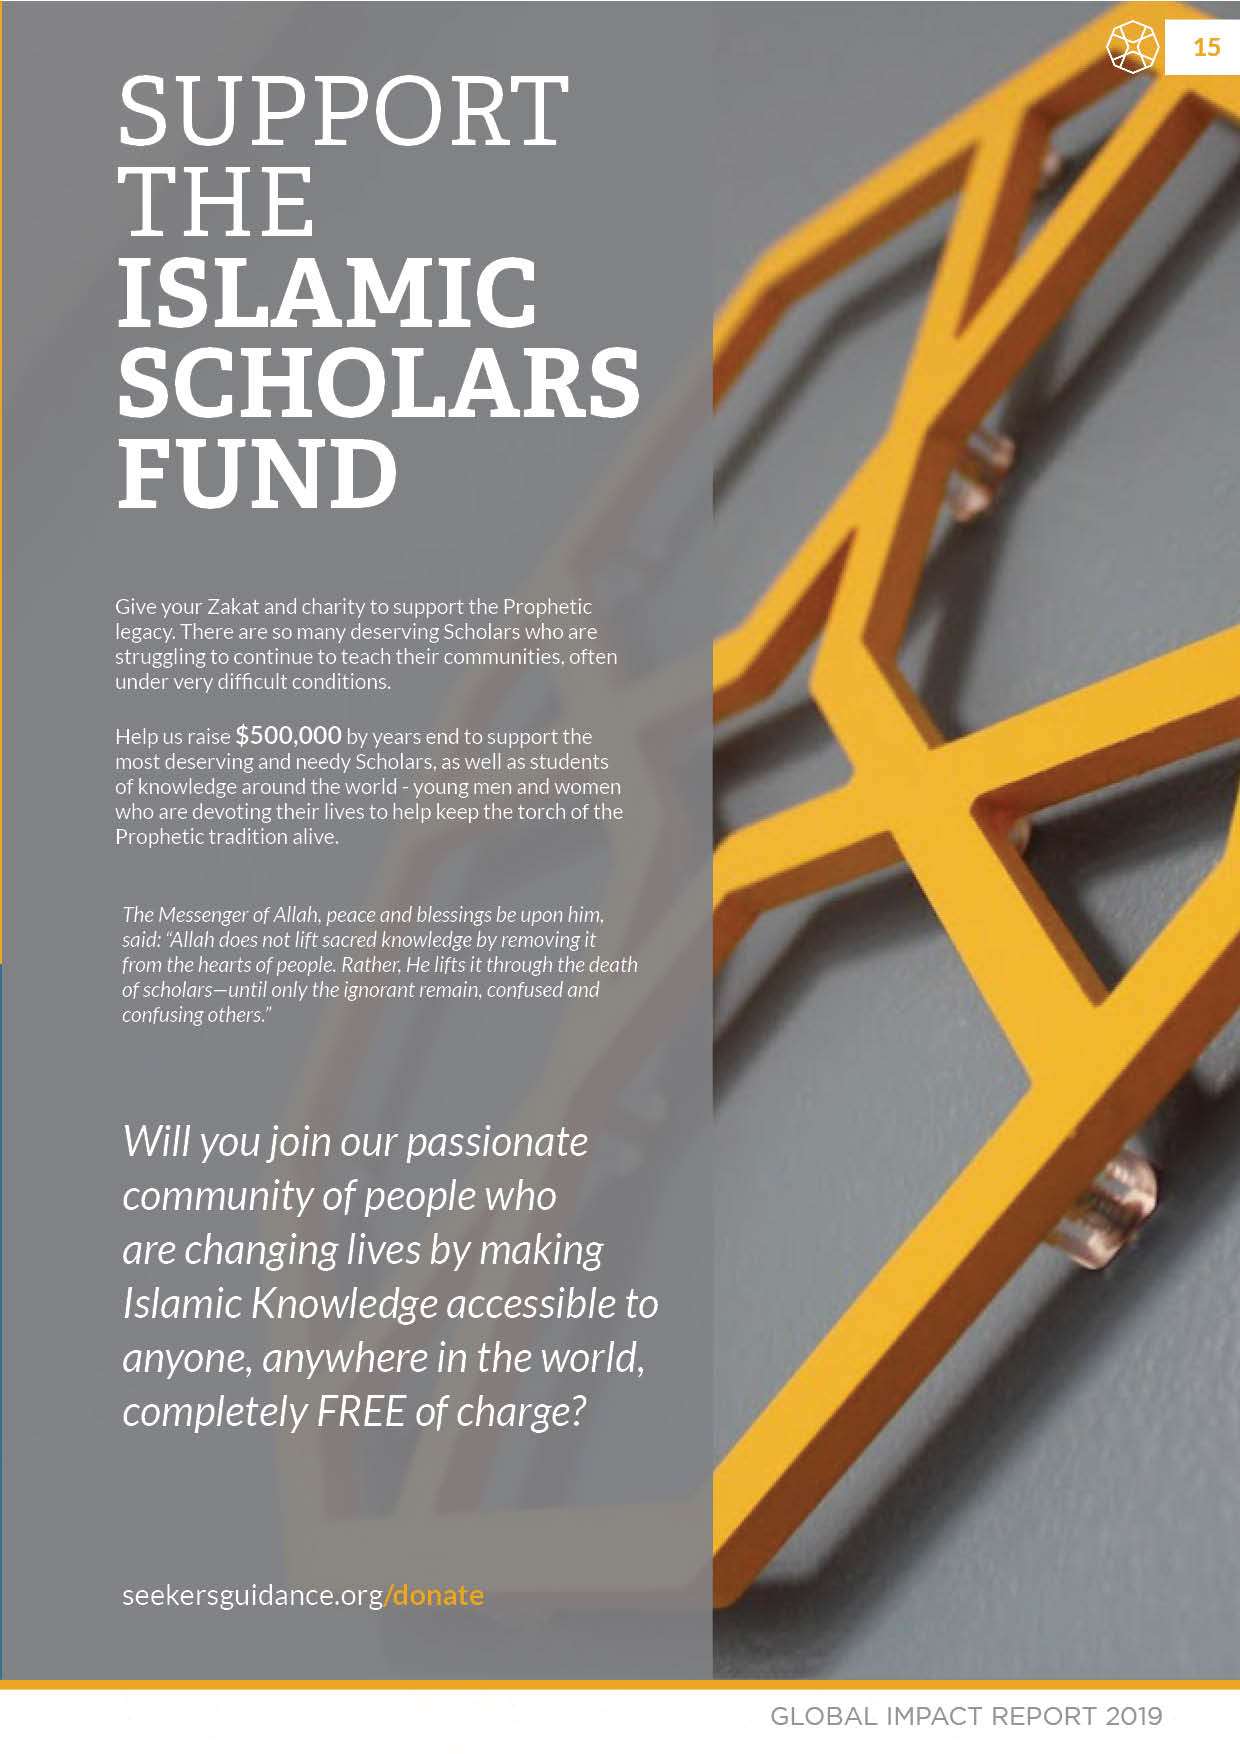 support the islamic sholars fund